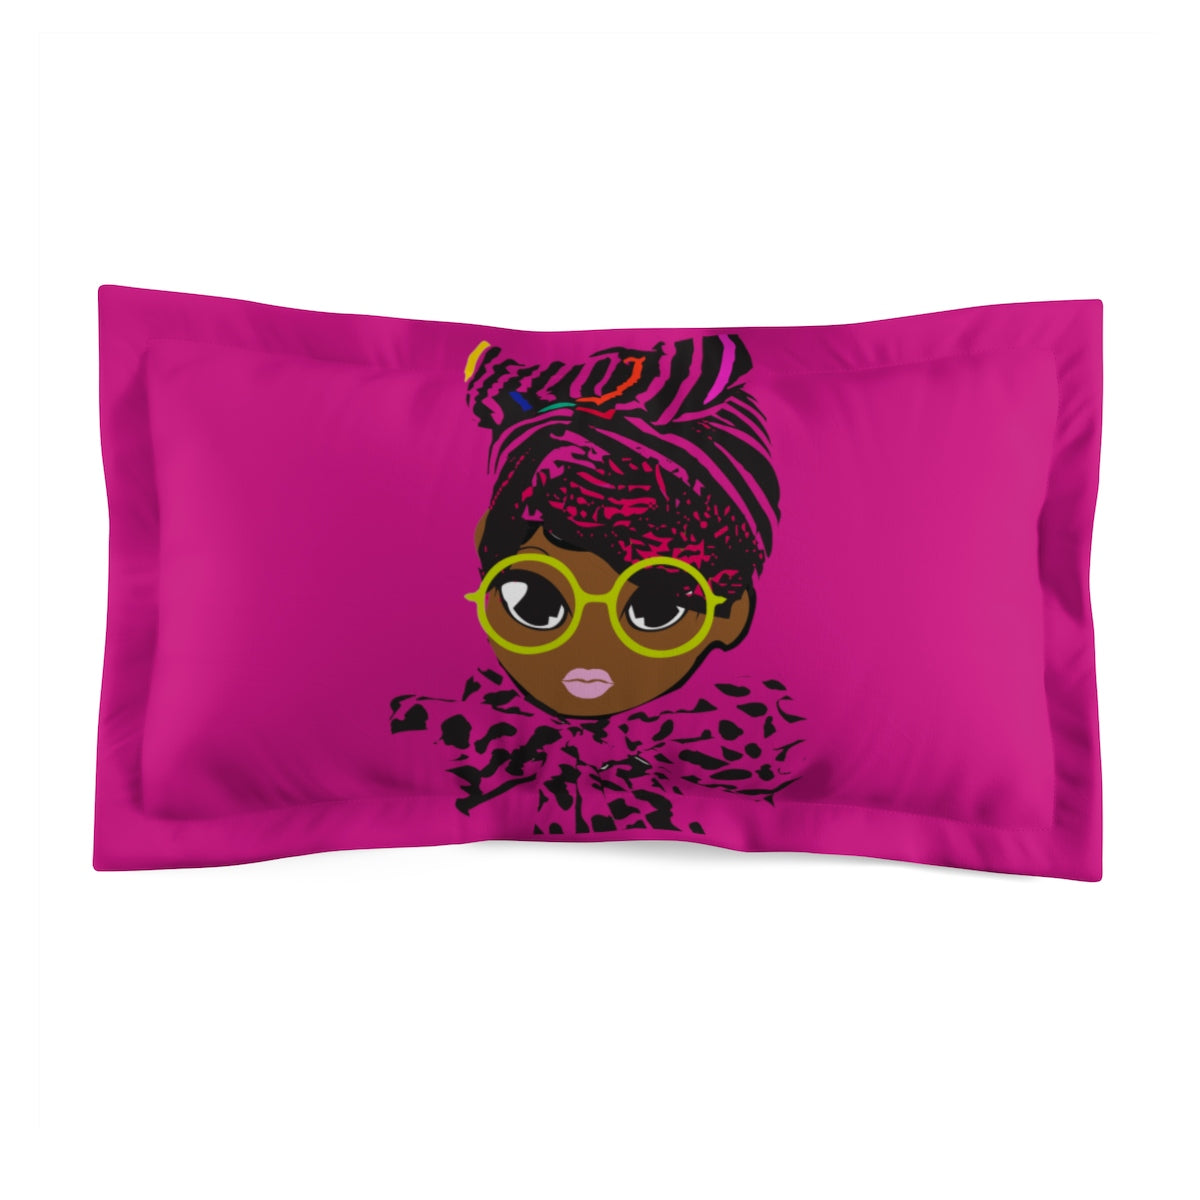 Geek Microfiber Pillow Sham-Hot Pink